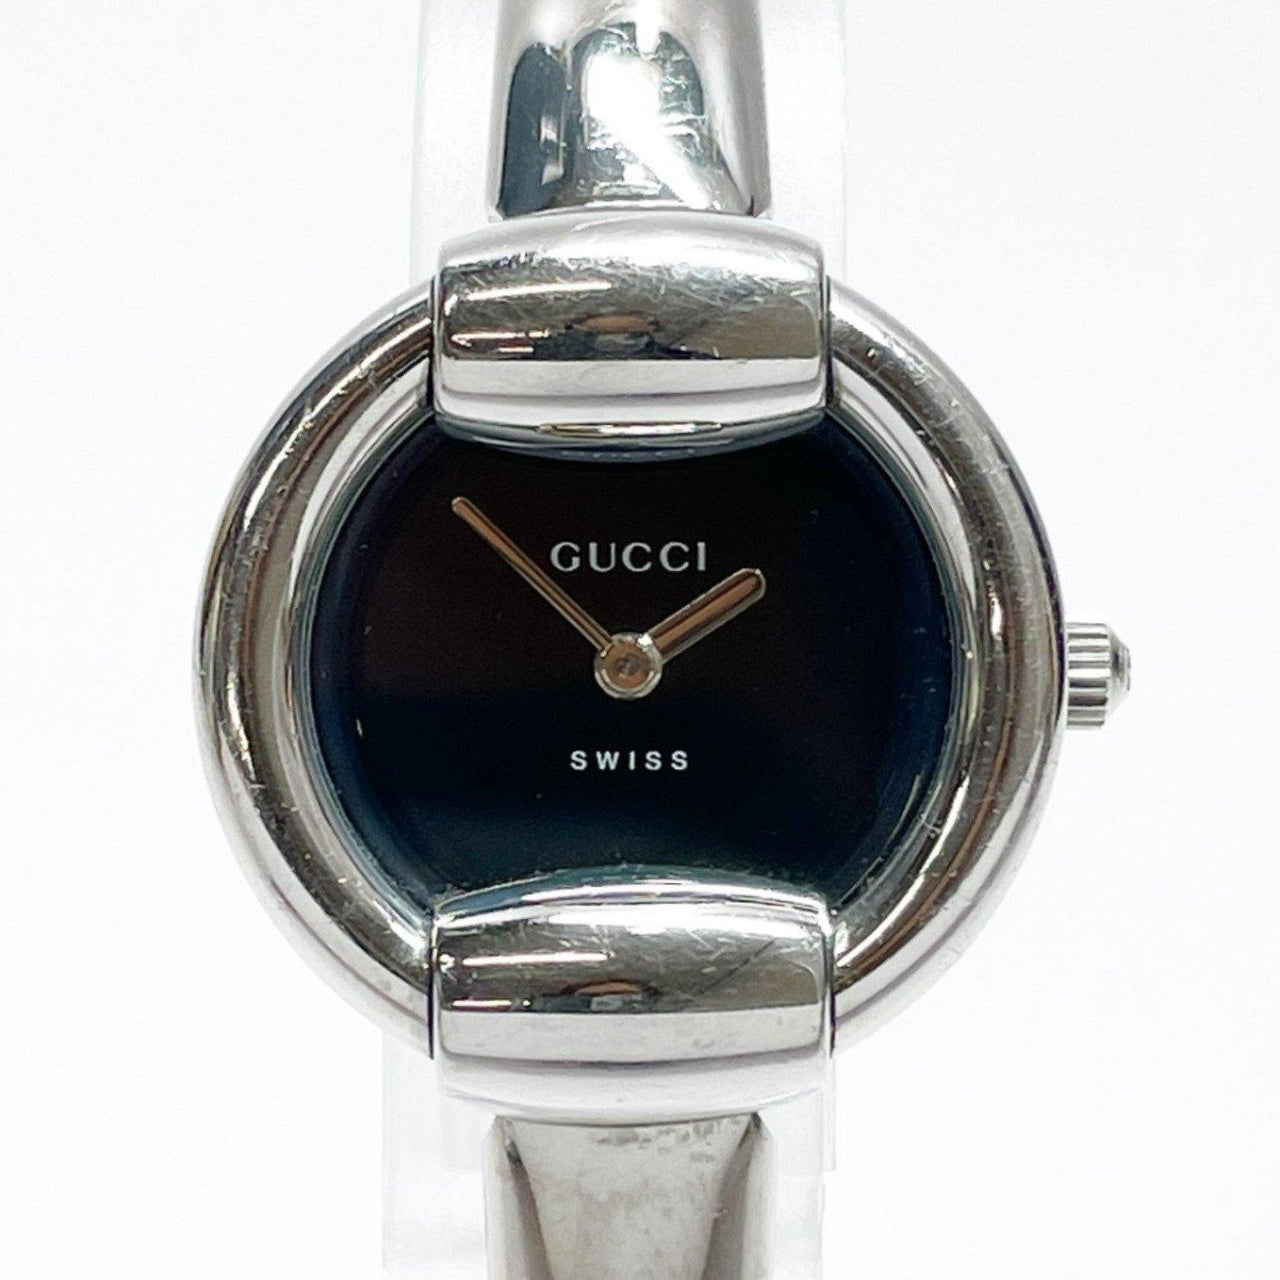 GUCCI Watches 1400L quartz Stainless Steel Silver Blackface Women Used - JP-BRANDS.com